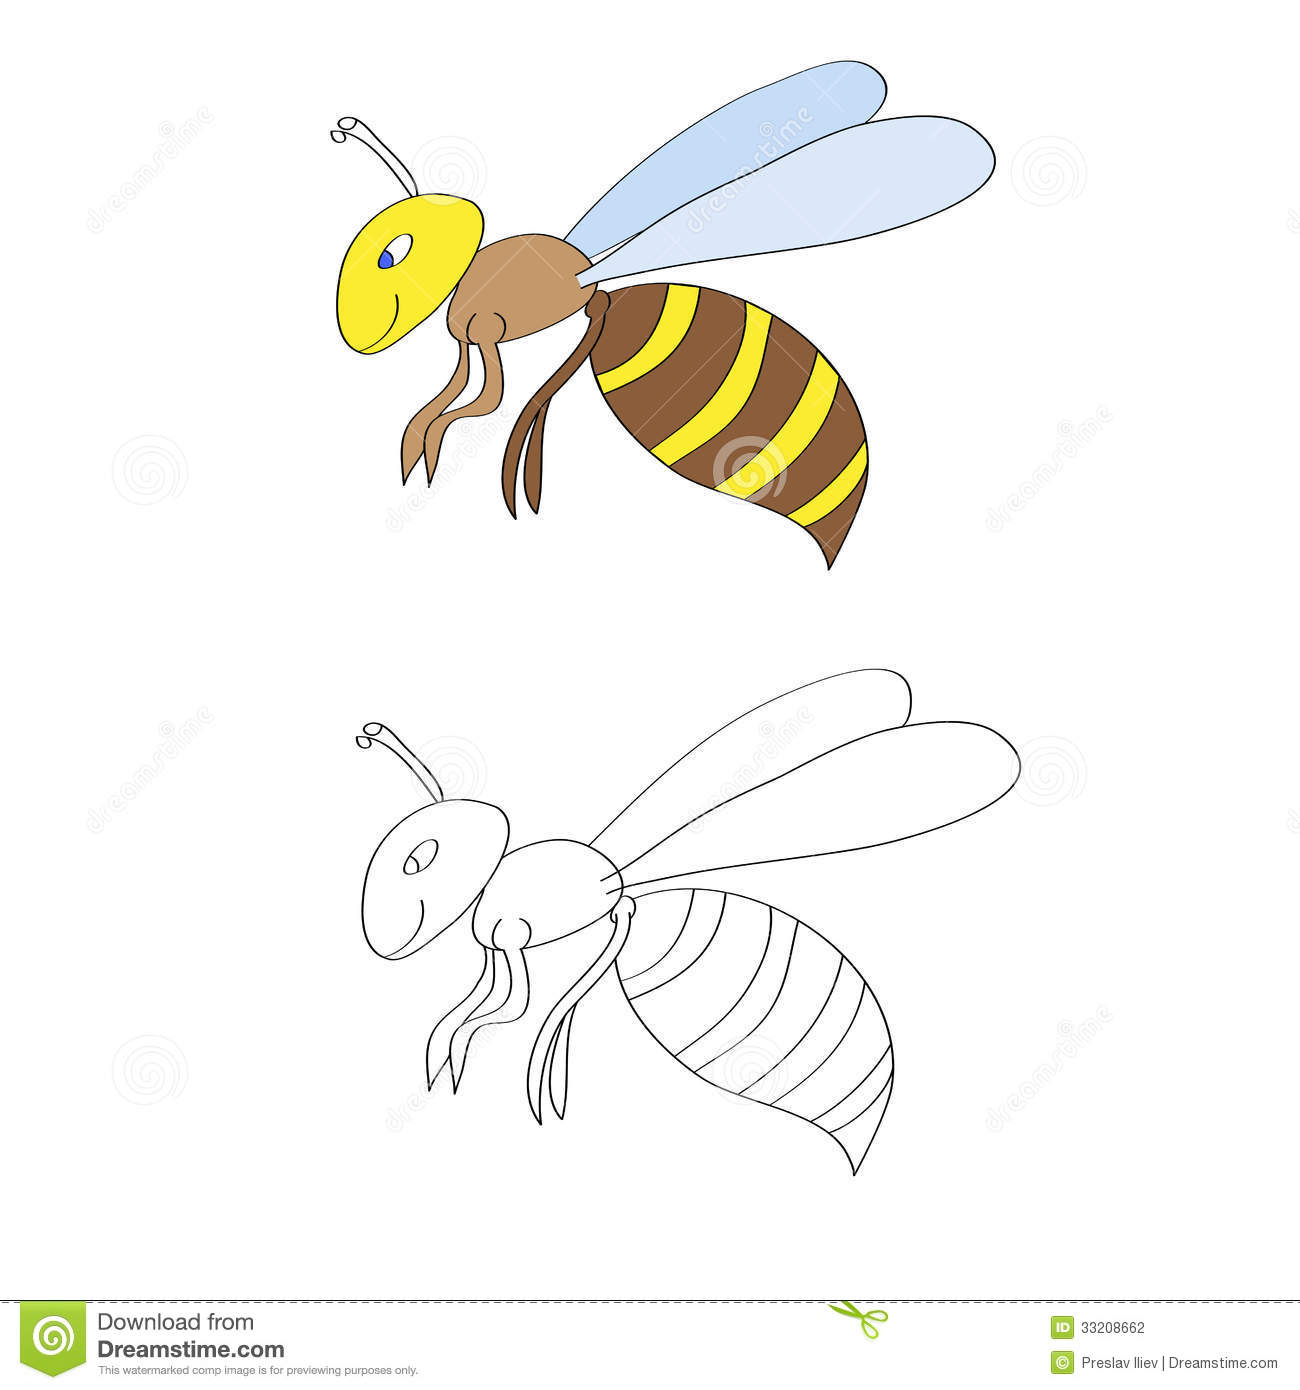 coloring page kids wasp vector image two smiling wasps white background 33208662 together with free printable christian coloring pages on easter coloring pages with animals besides easter coloring pages with animals 2 on easter coloring pages with animals together with selena gomez coloring pages on easter coloring pages with animals additionally easter coloring pages with animals 4 on easter coloring pages with animals